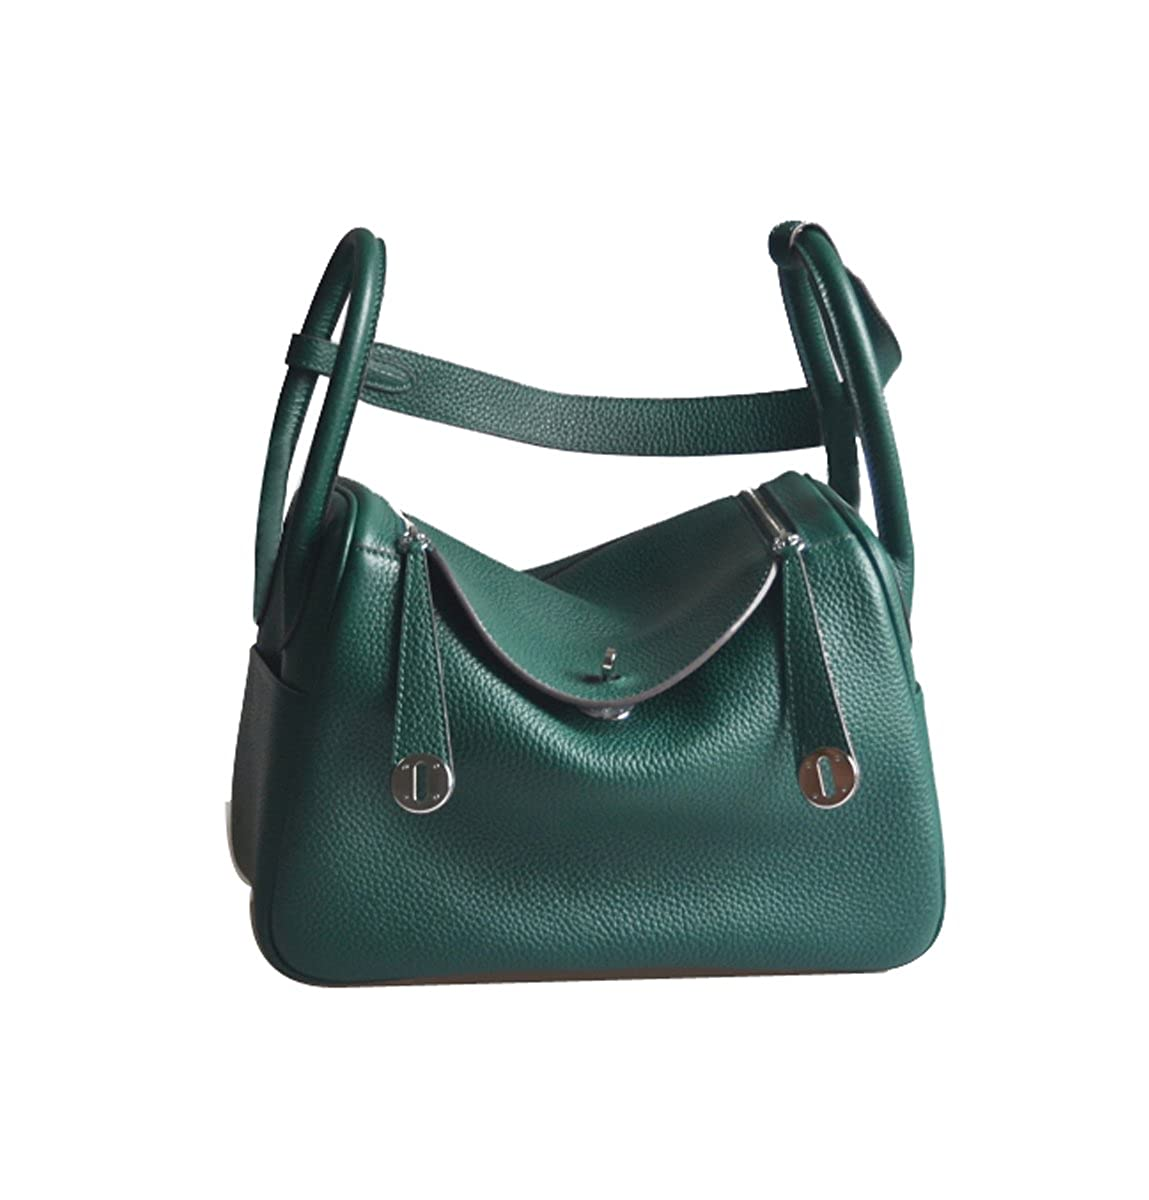 46f5d966312b Hobo Bags : Online Shopping for Clothing, Shoes, Jewelry, Pet ...